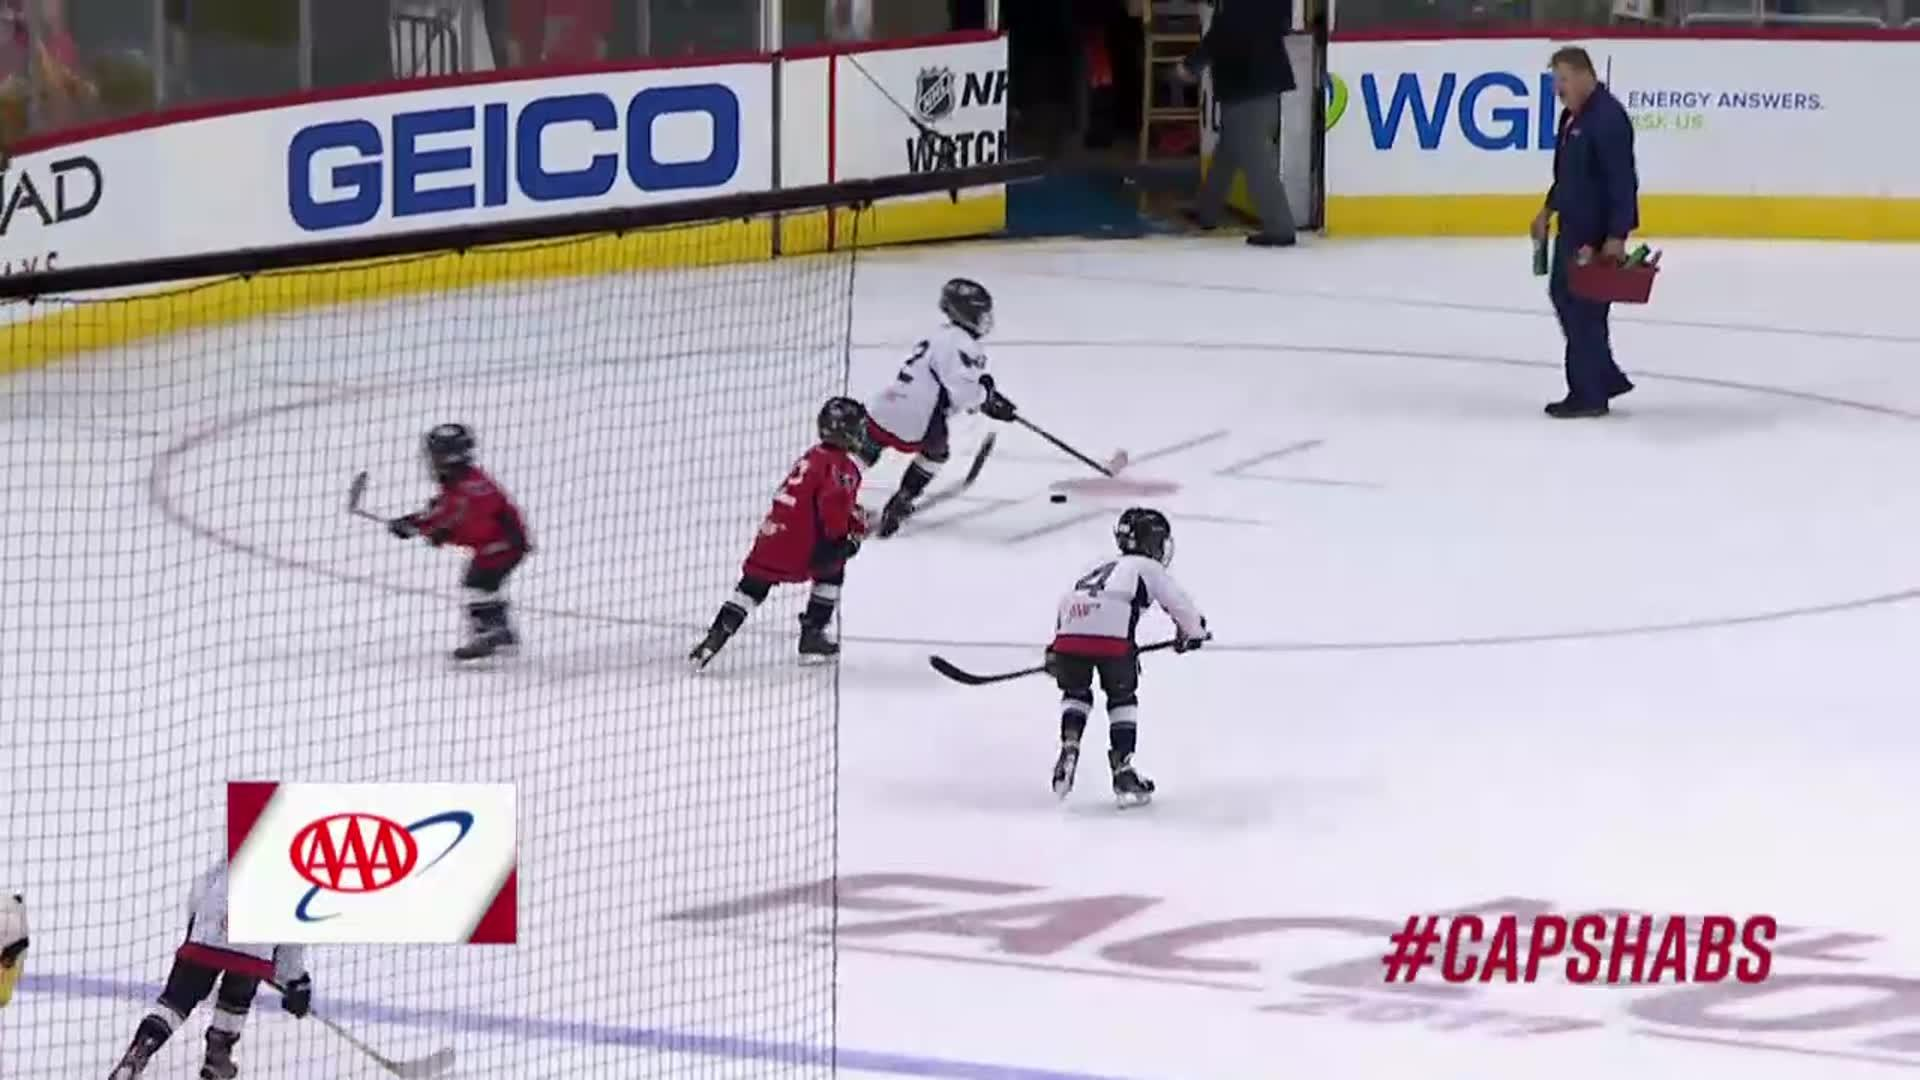 #CapsHabs Mites On Ice 10/7/17